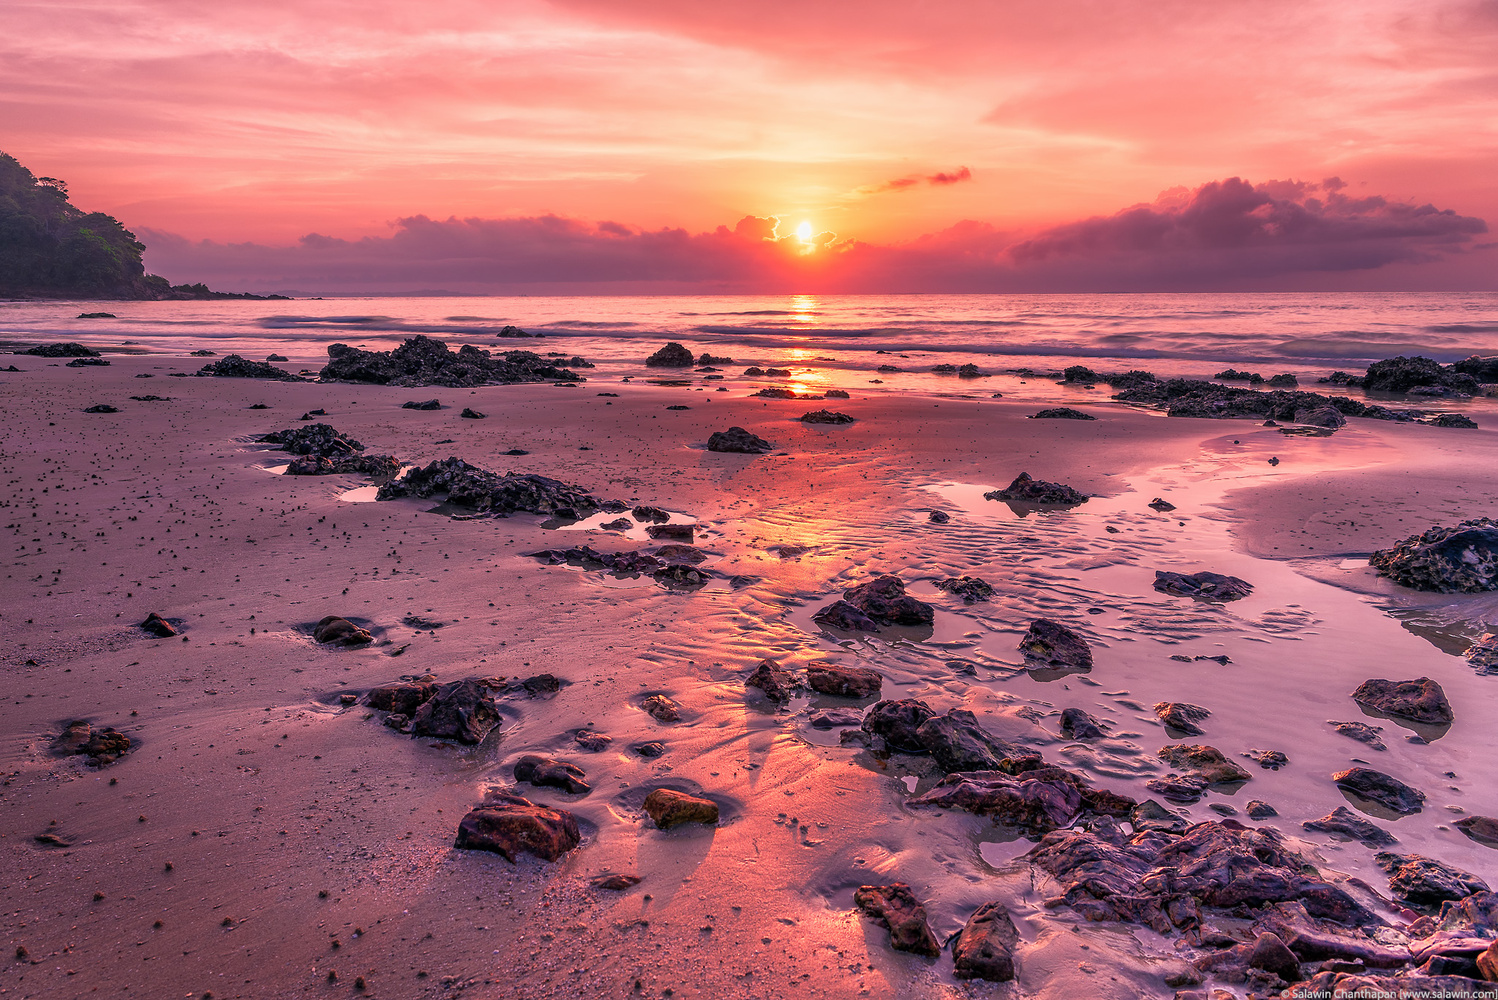 Beautiful Sunrise at Rayong Beach by Salawin Chanthapan